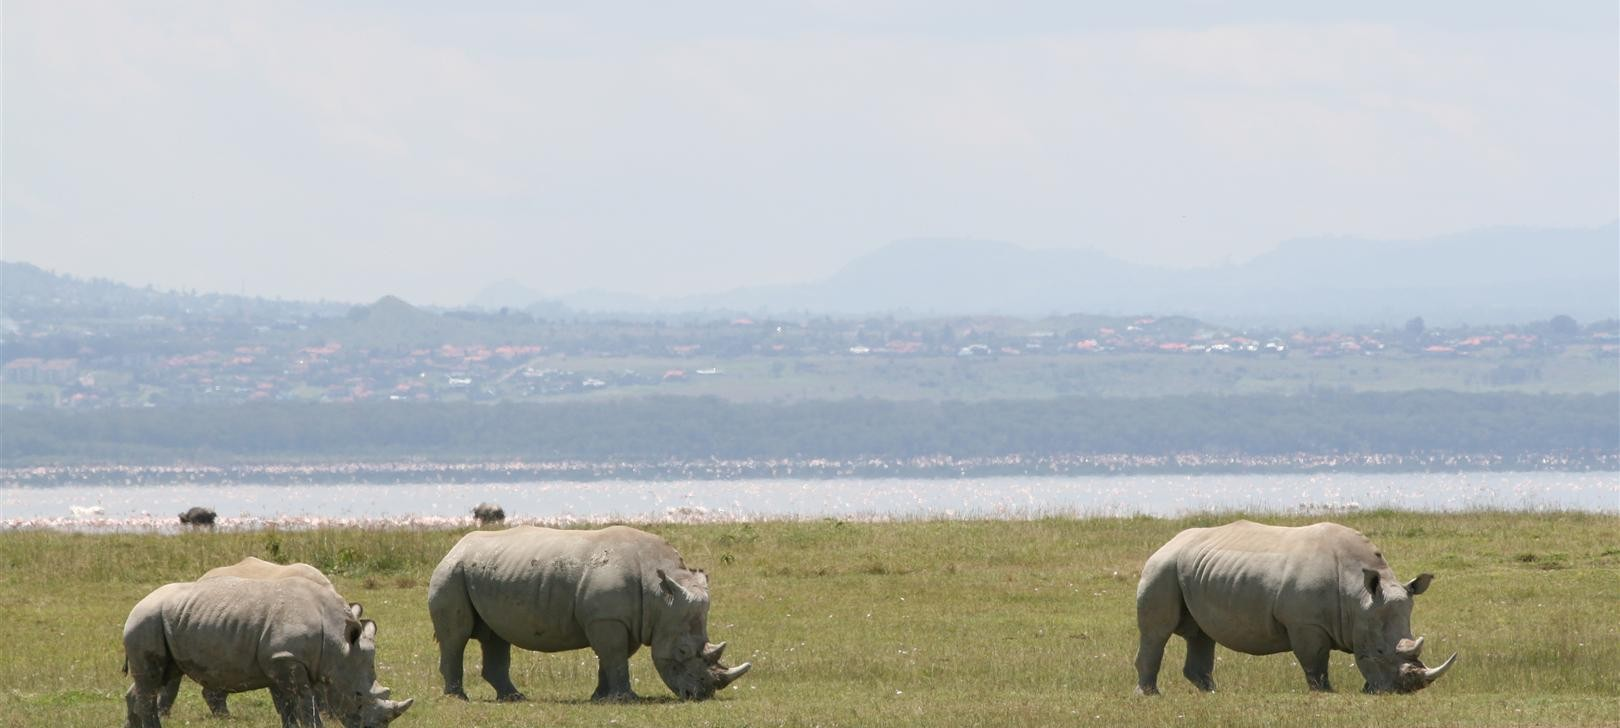 3 rhino at Nakuru (photo by Steward Shang)